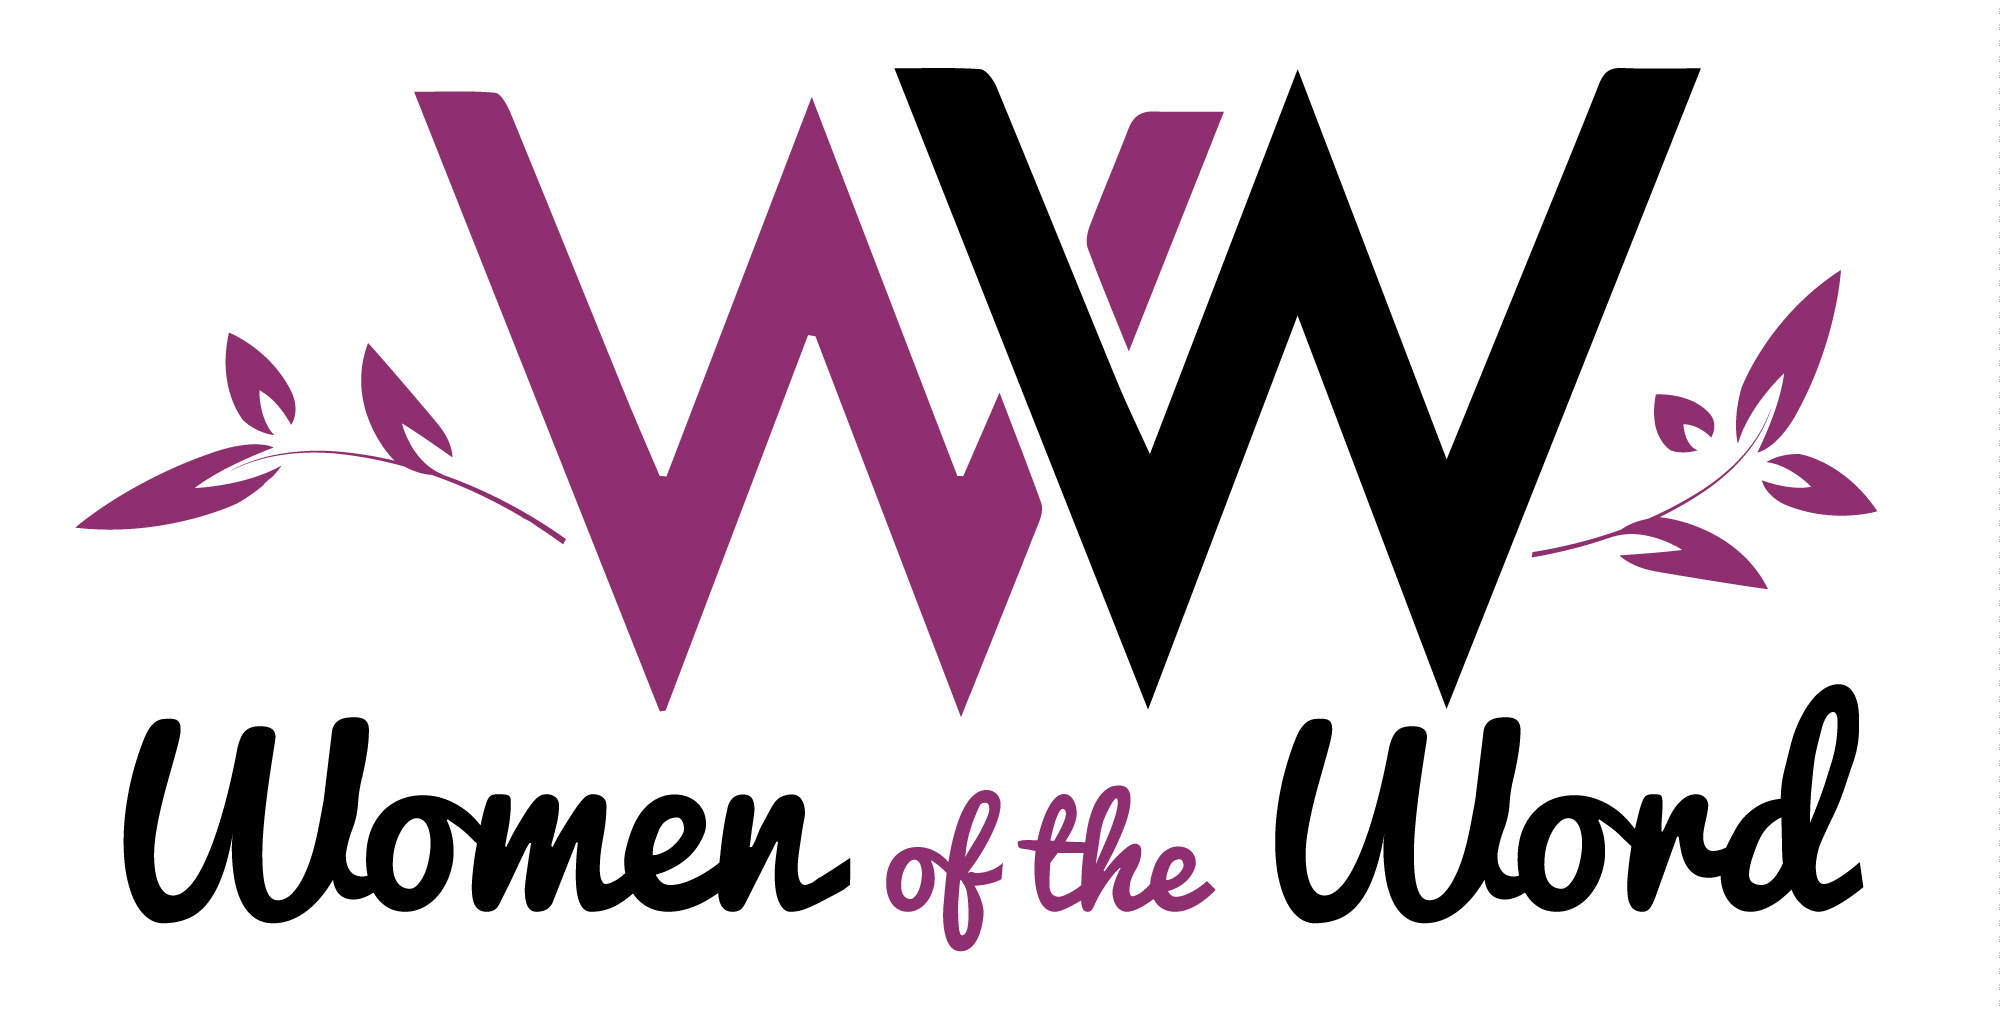 Women-of-the-word-logo.jpg